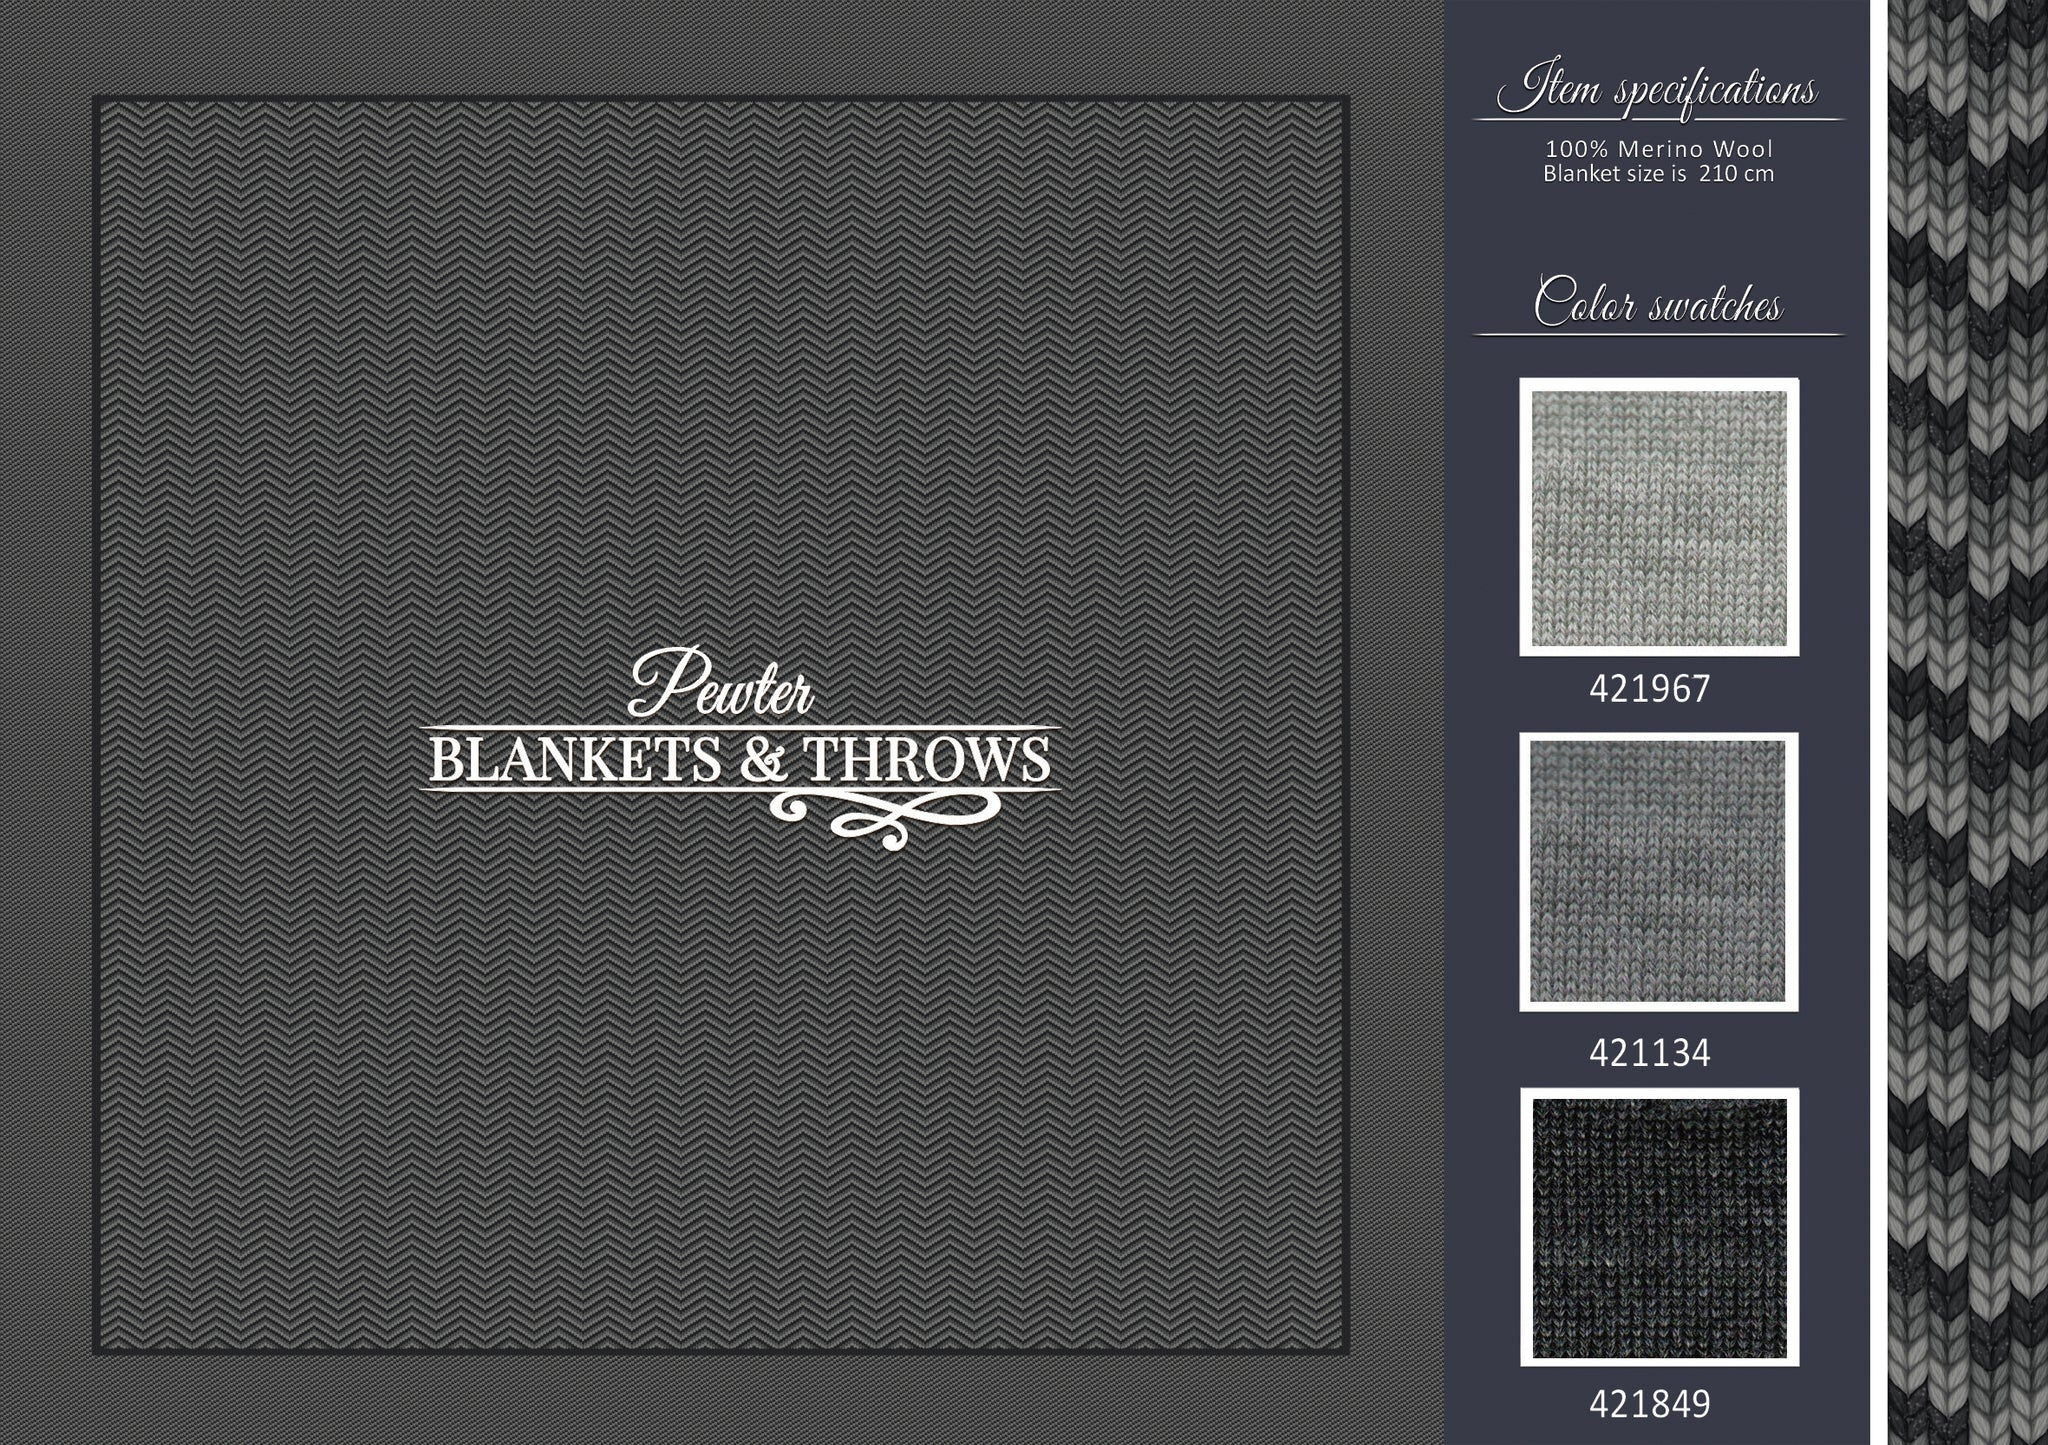 Pewter - Blankets & Throws